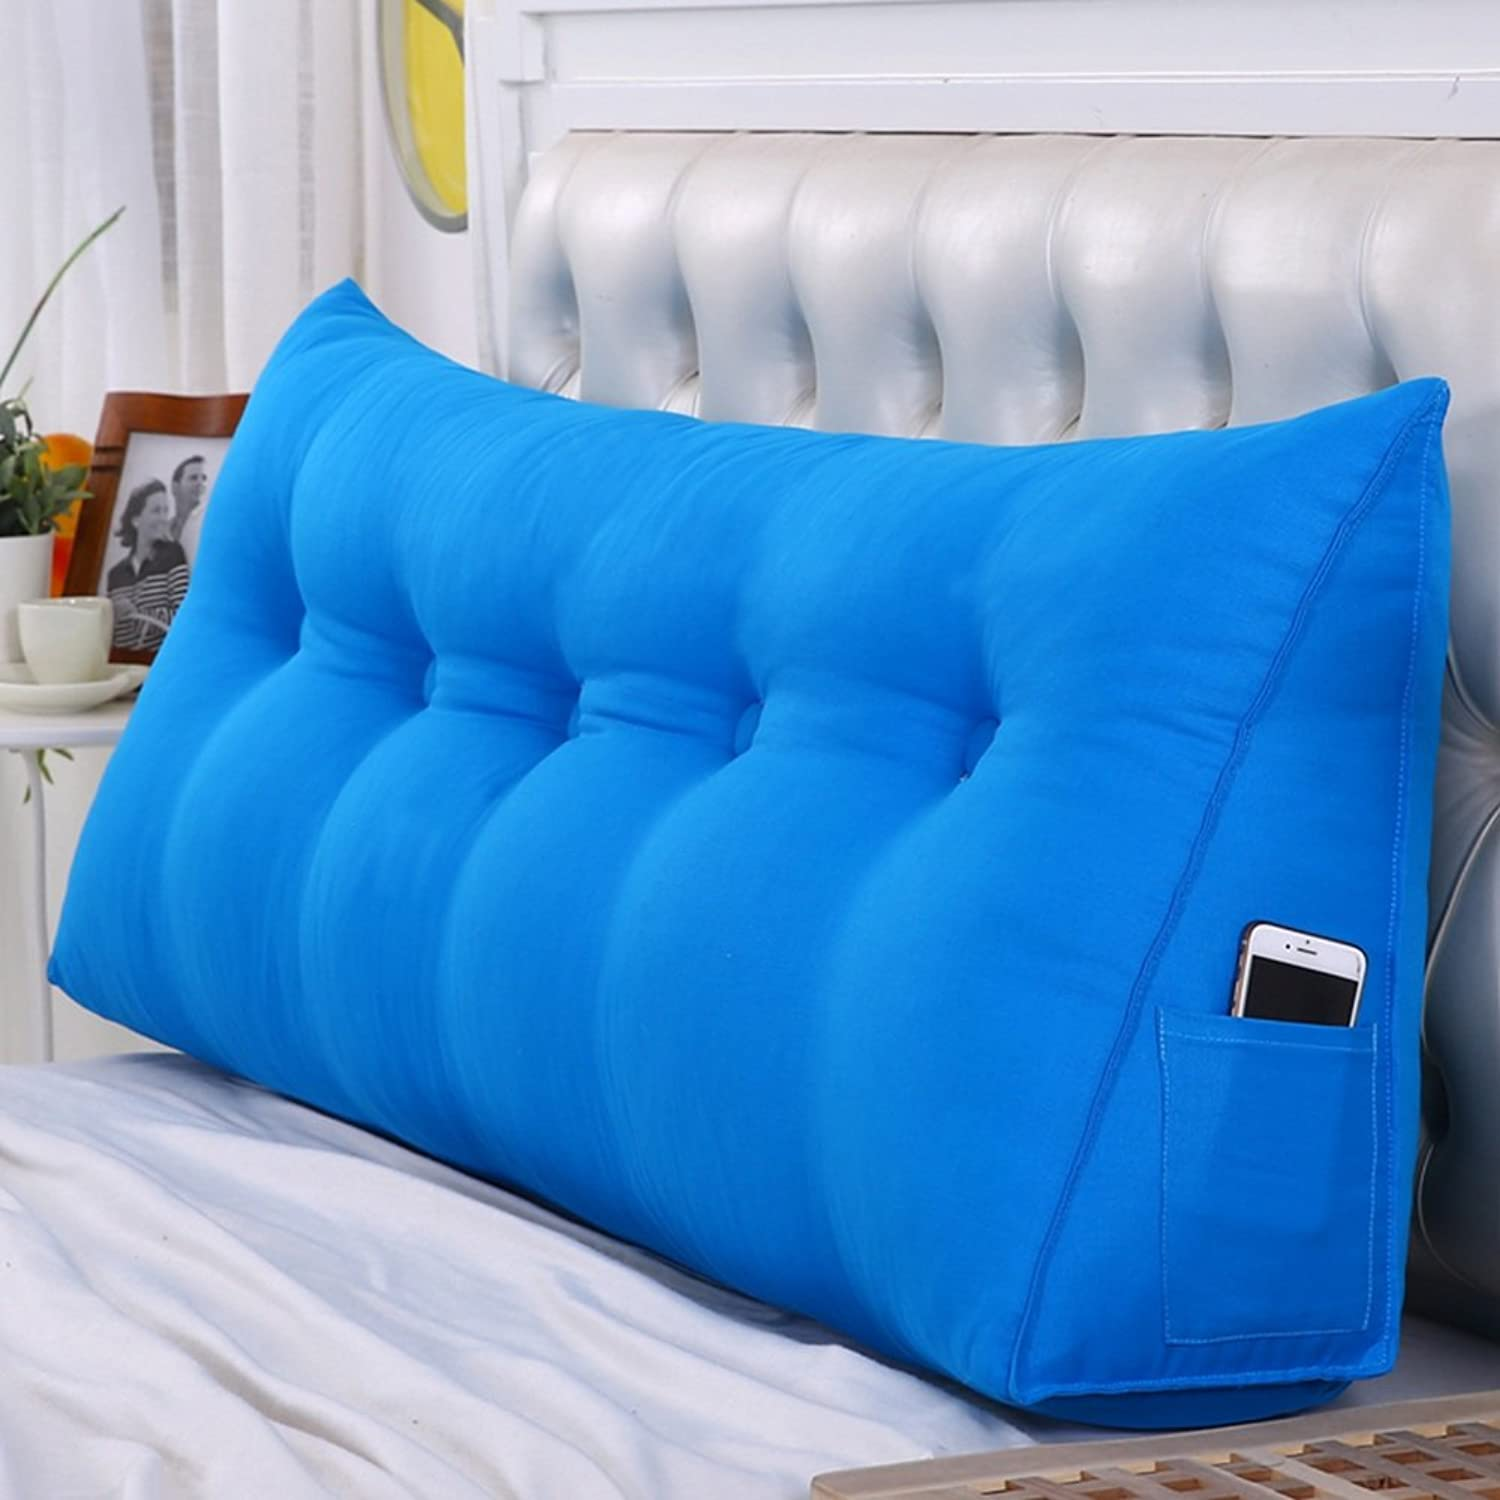 WENZHE Upholstered Fabric Headboard Bedside Cushion Pads Cover Bed Wedges Backrest Waist Pad Triangular Pillow Soft Case Home Bedroom Lumbar Pillow Sofa Pillow Back Cushion Multifunction, Washable, 20cm Thick, 5 colors, 8 Sizes Optional ( color   3  , Siz